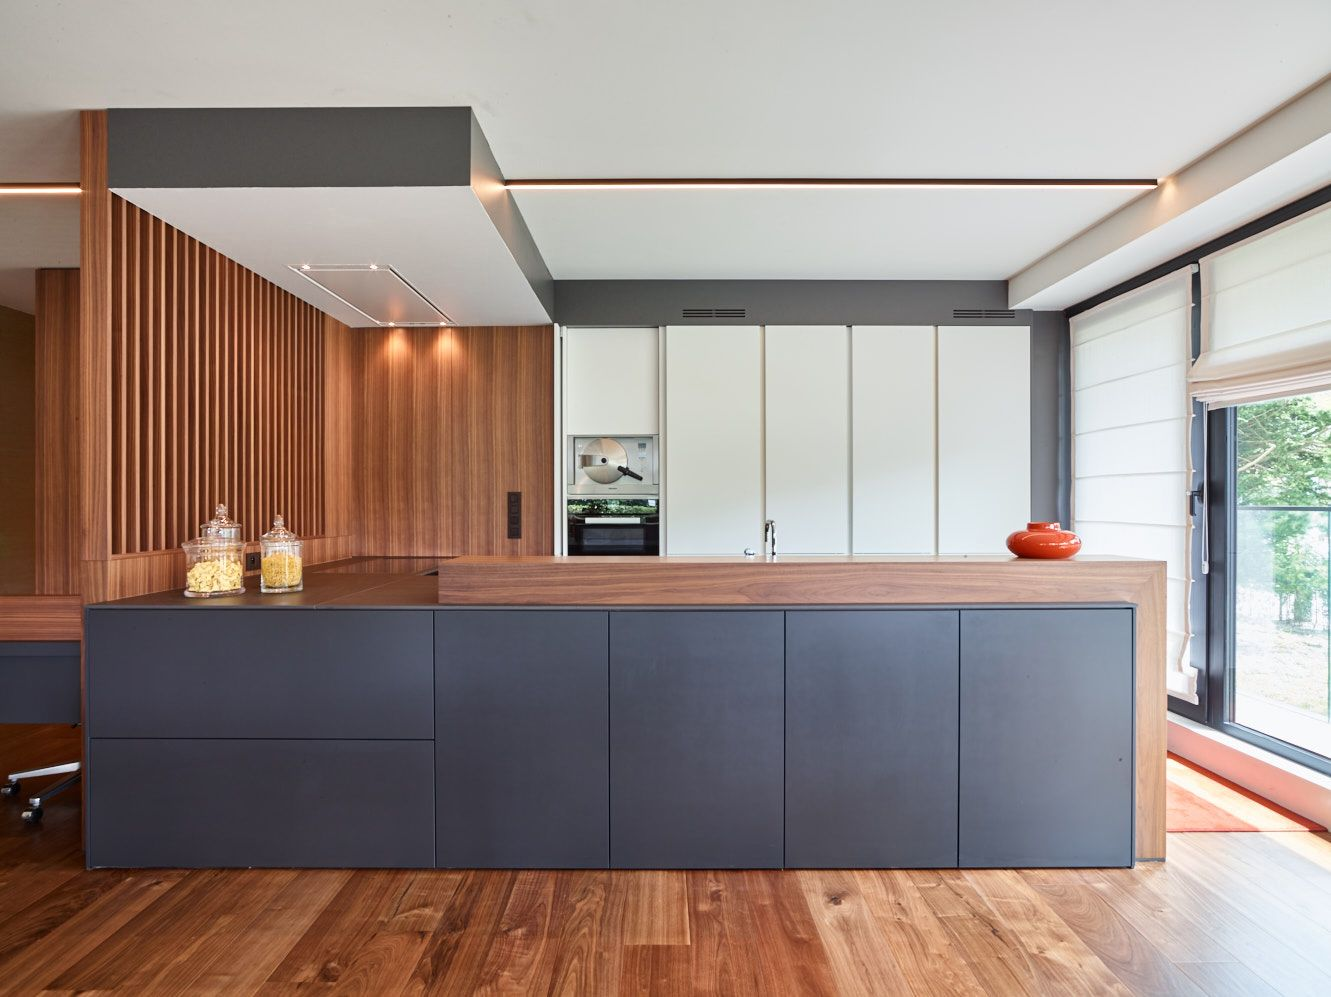 Modern Kitchen Office this siematic kitchen extends into an office area, with a modern